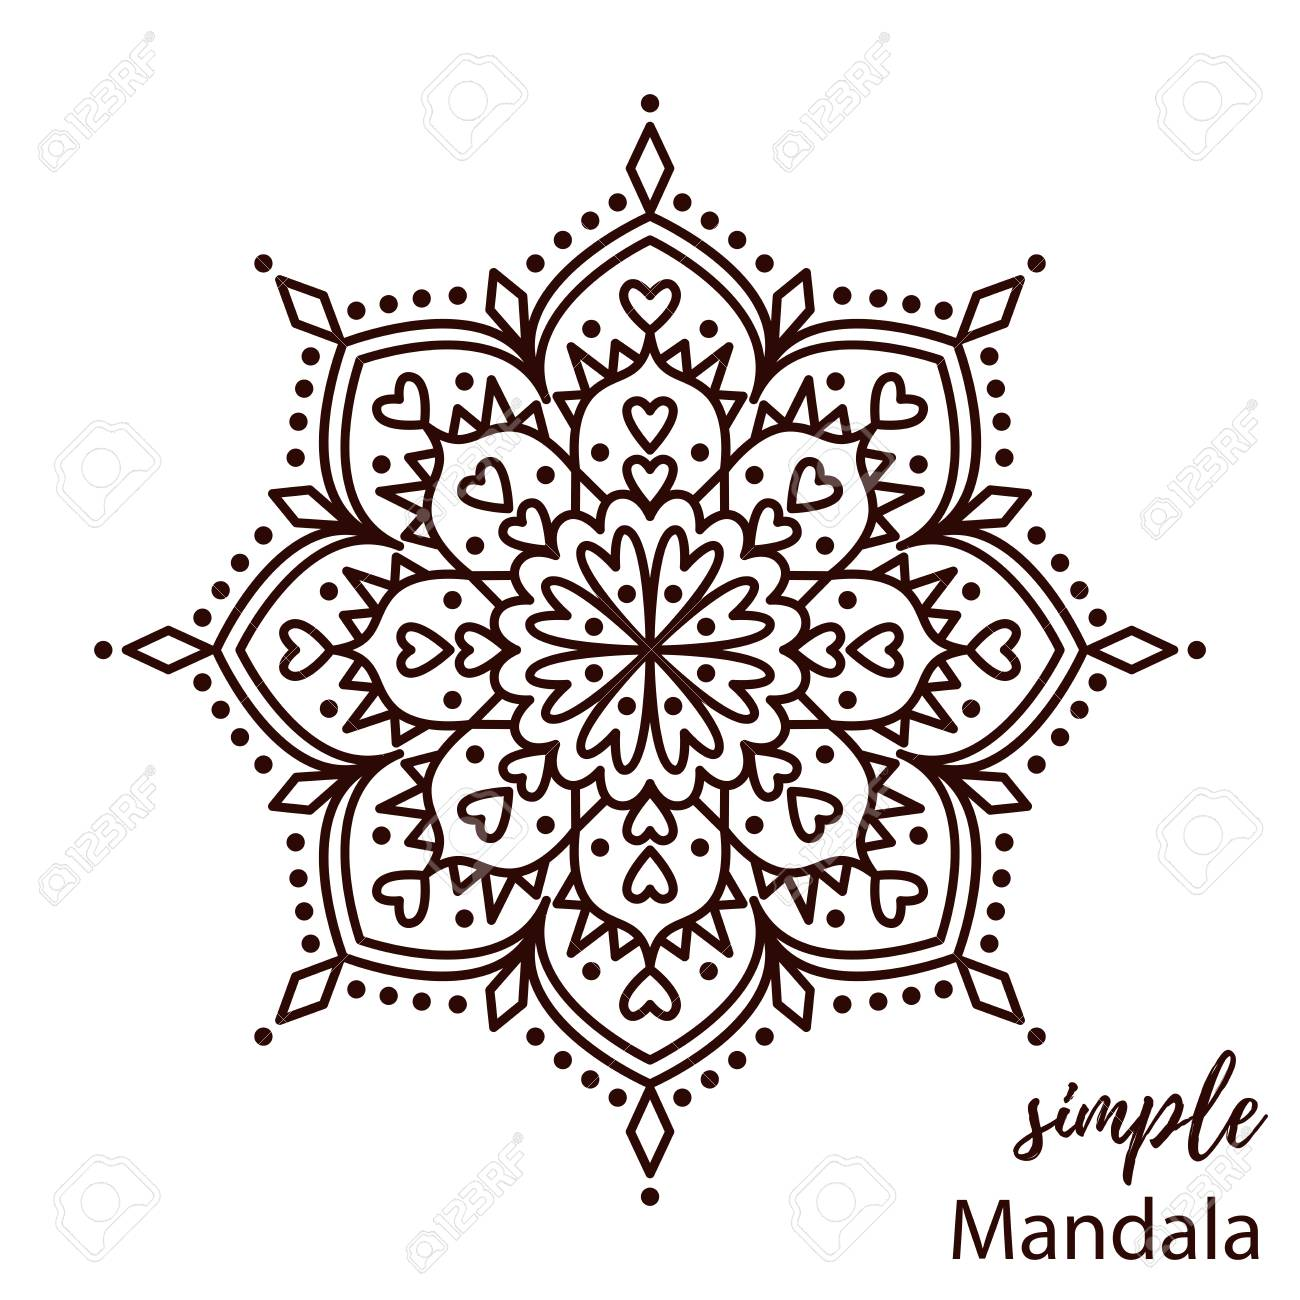 cute simple mandala coloring page stock vector 77512496 - Simple Mandala Coloring Pages